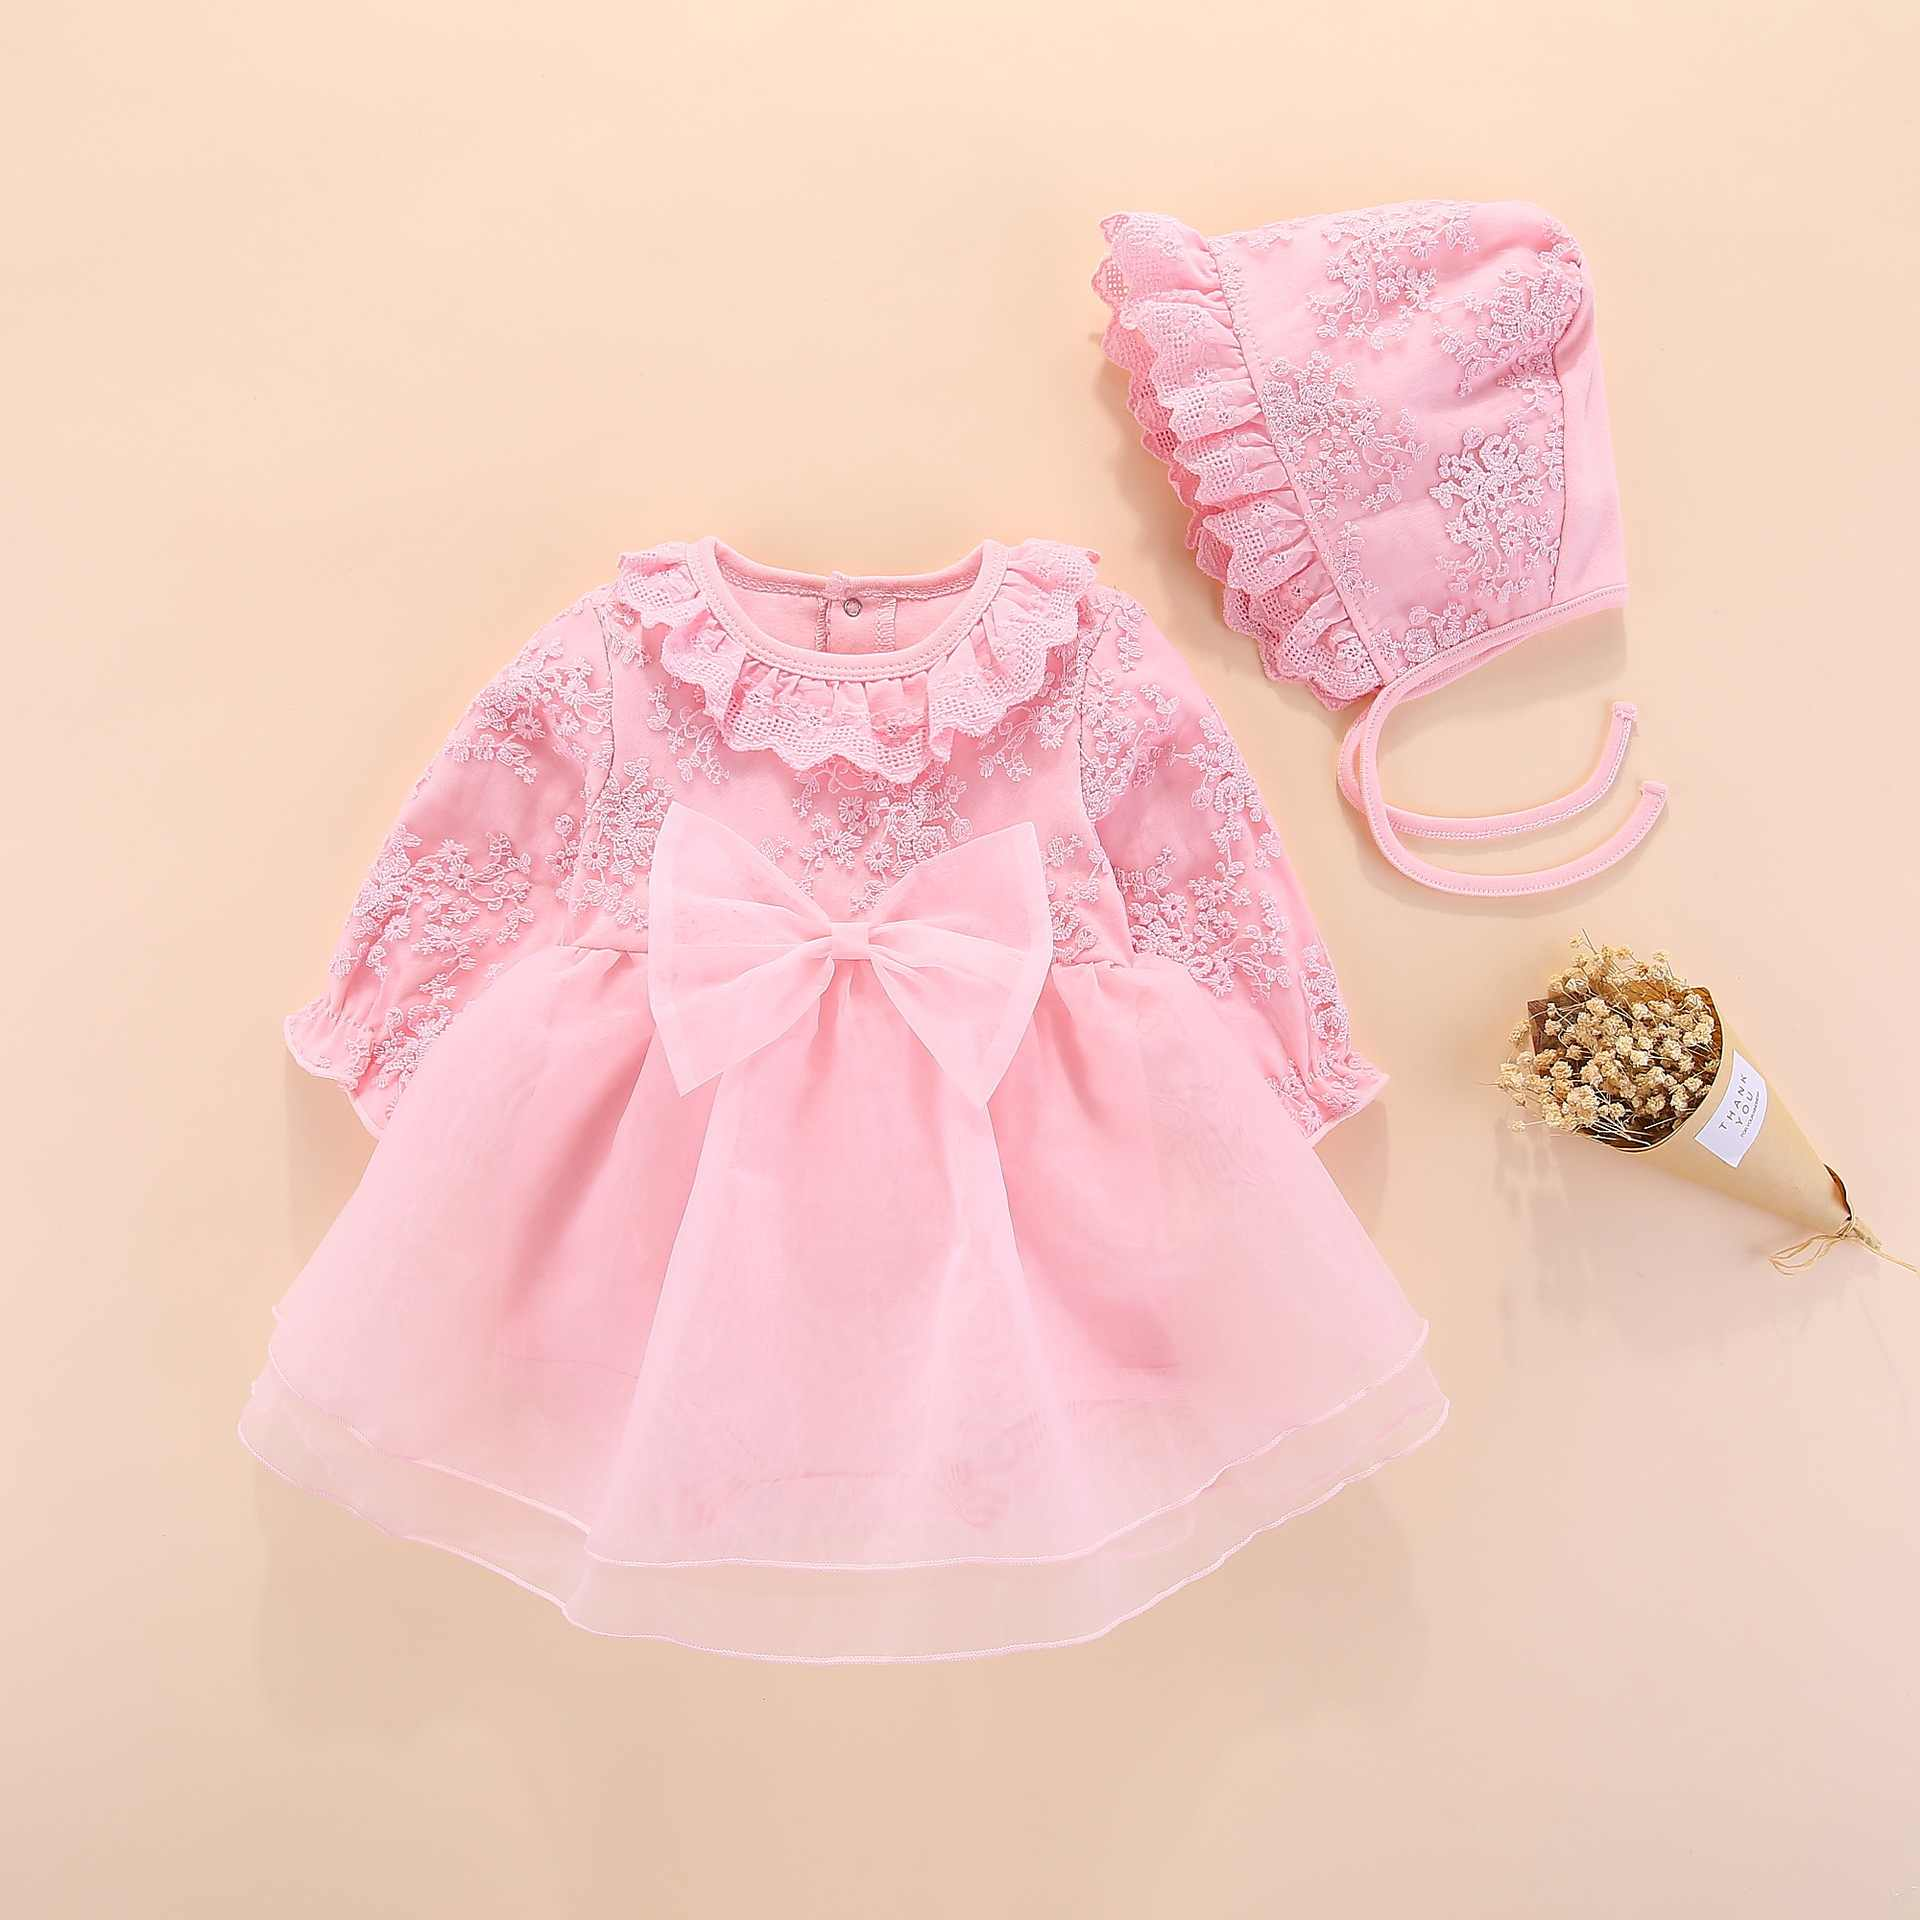 48374e4052a long sleeve baby girls dress princess and wedding baptism kids dresses  newborn baby girl clothes pink